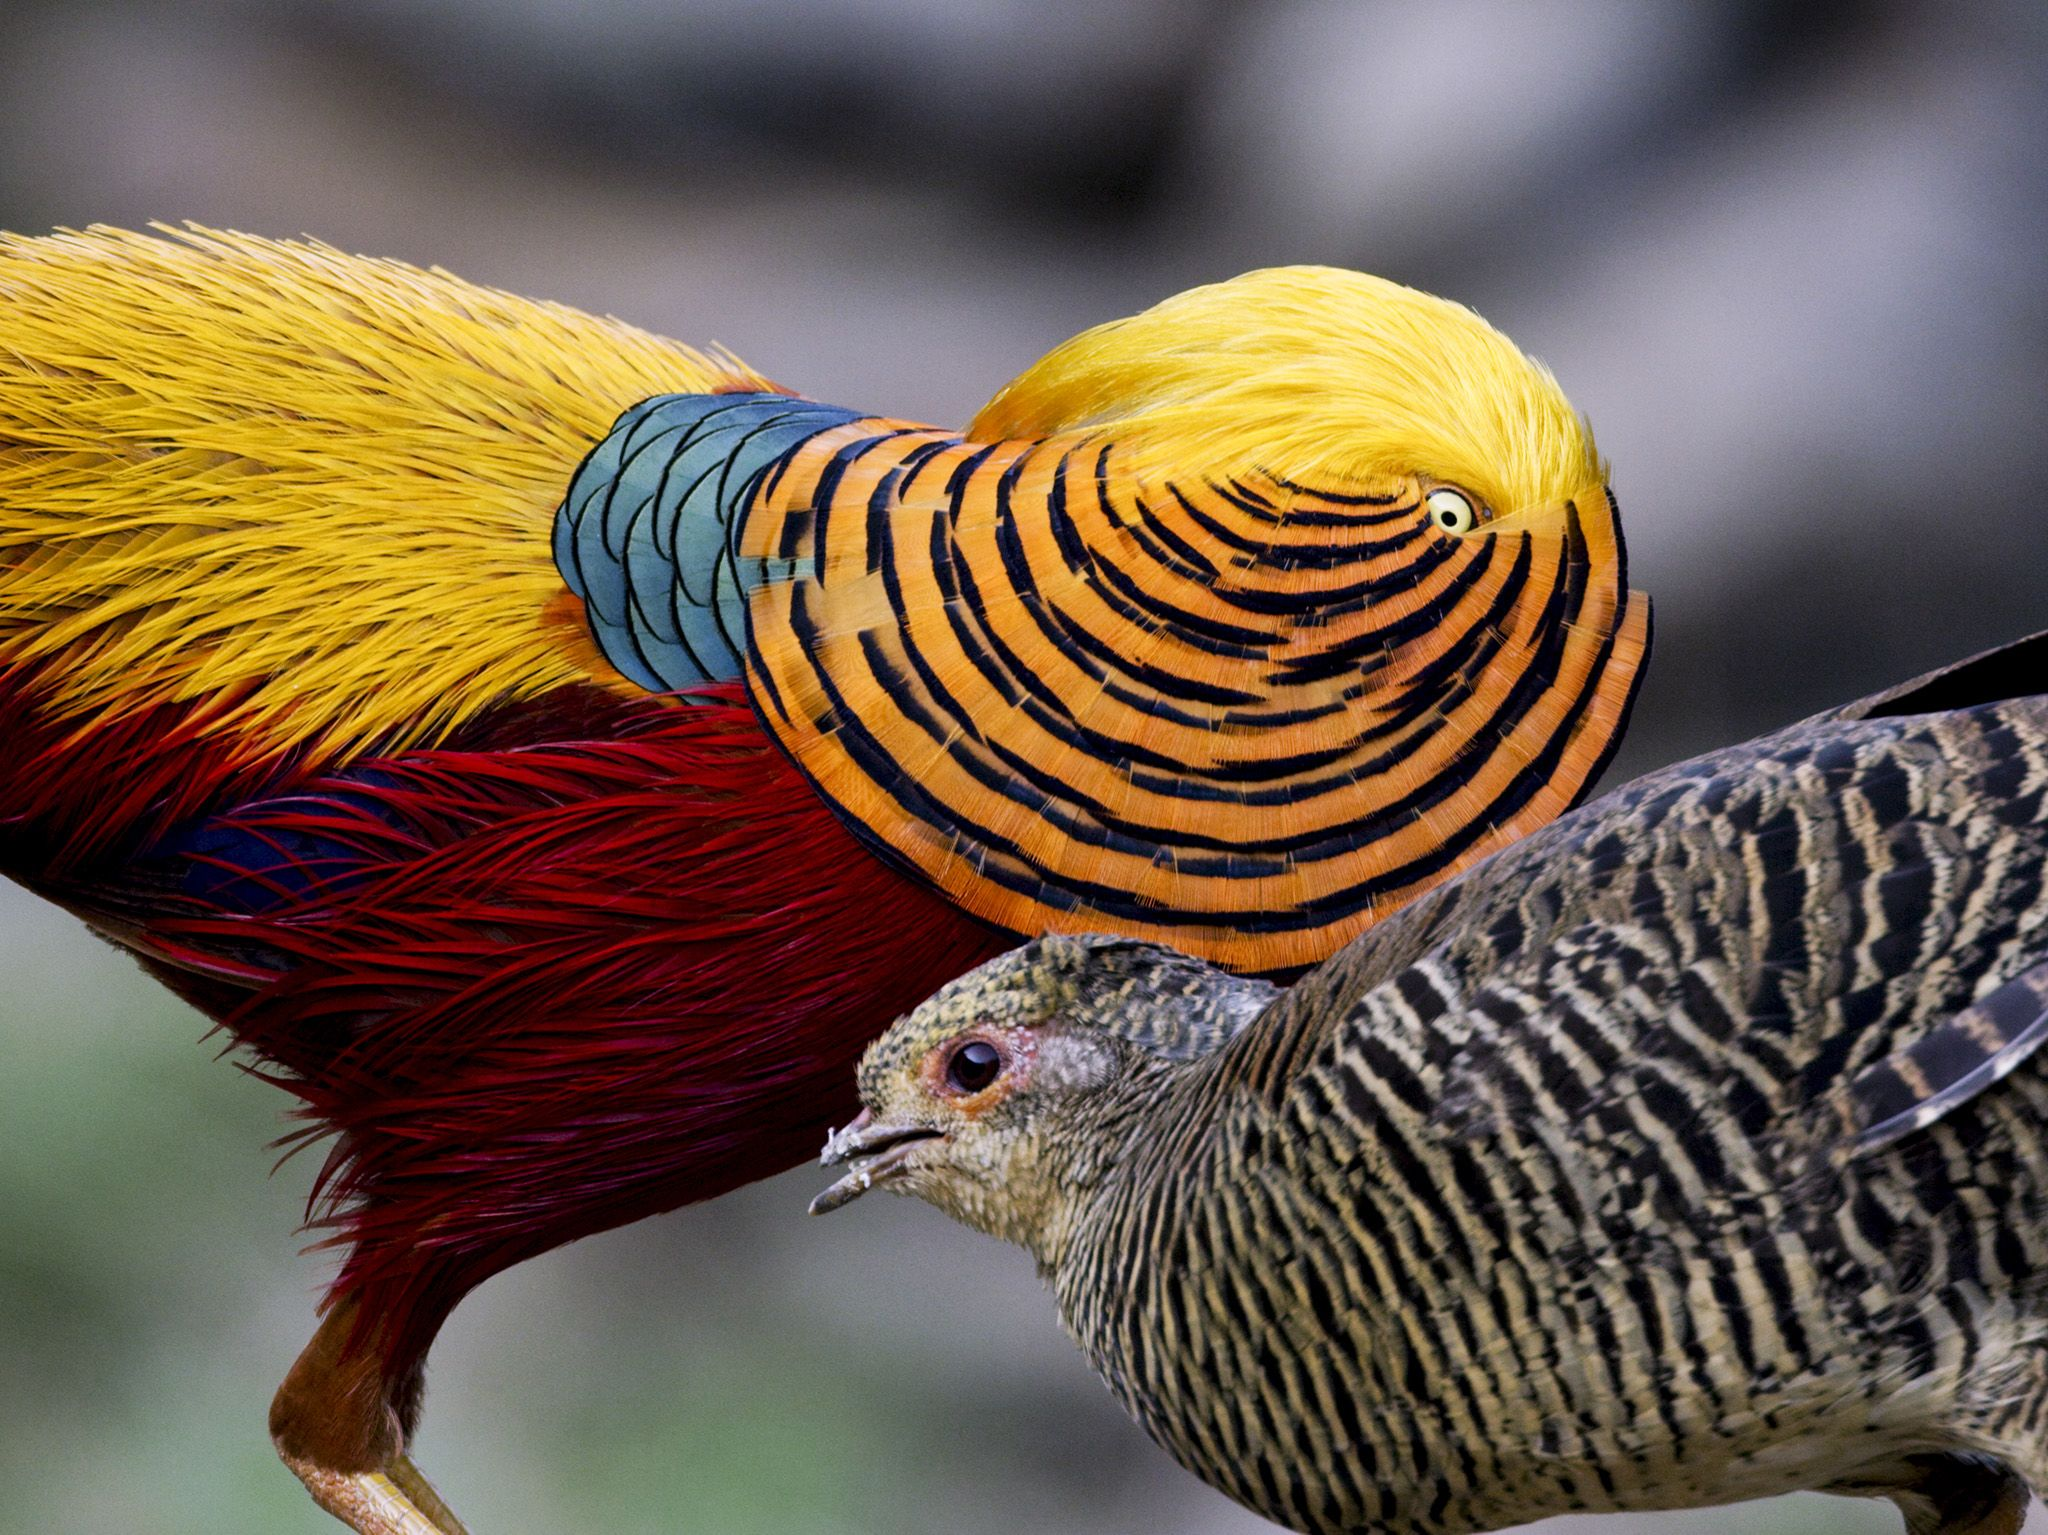 Yangxian County, Shaanxi Province, China: Male and female Golden Pheasants. Male showing feather... [Photo of the day - October 2019]